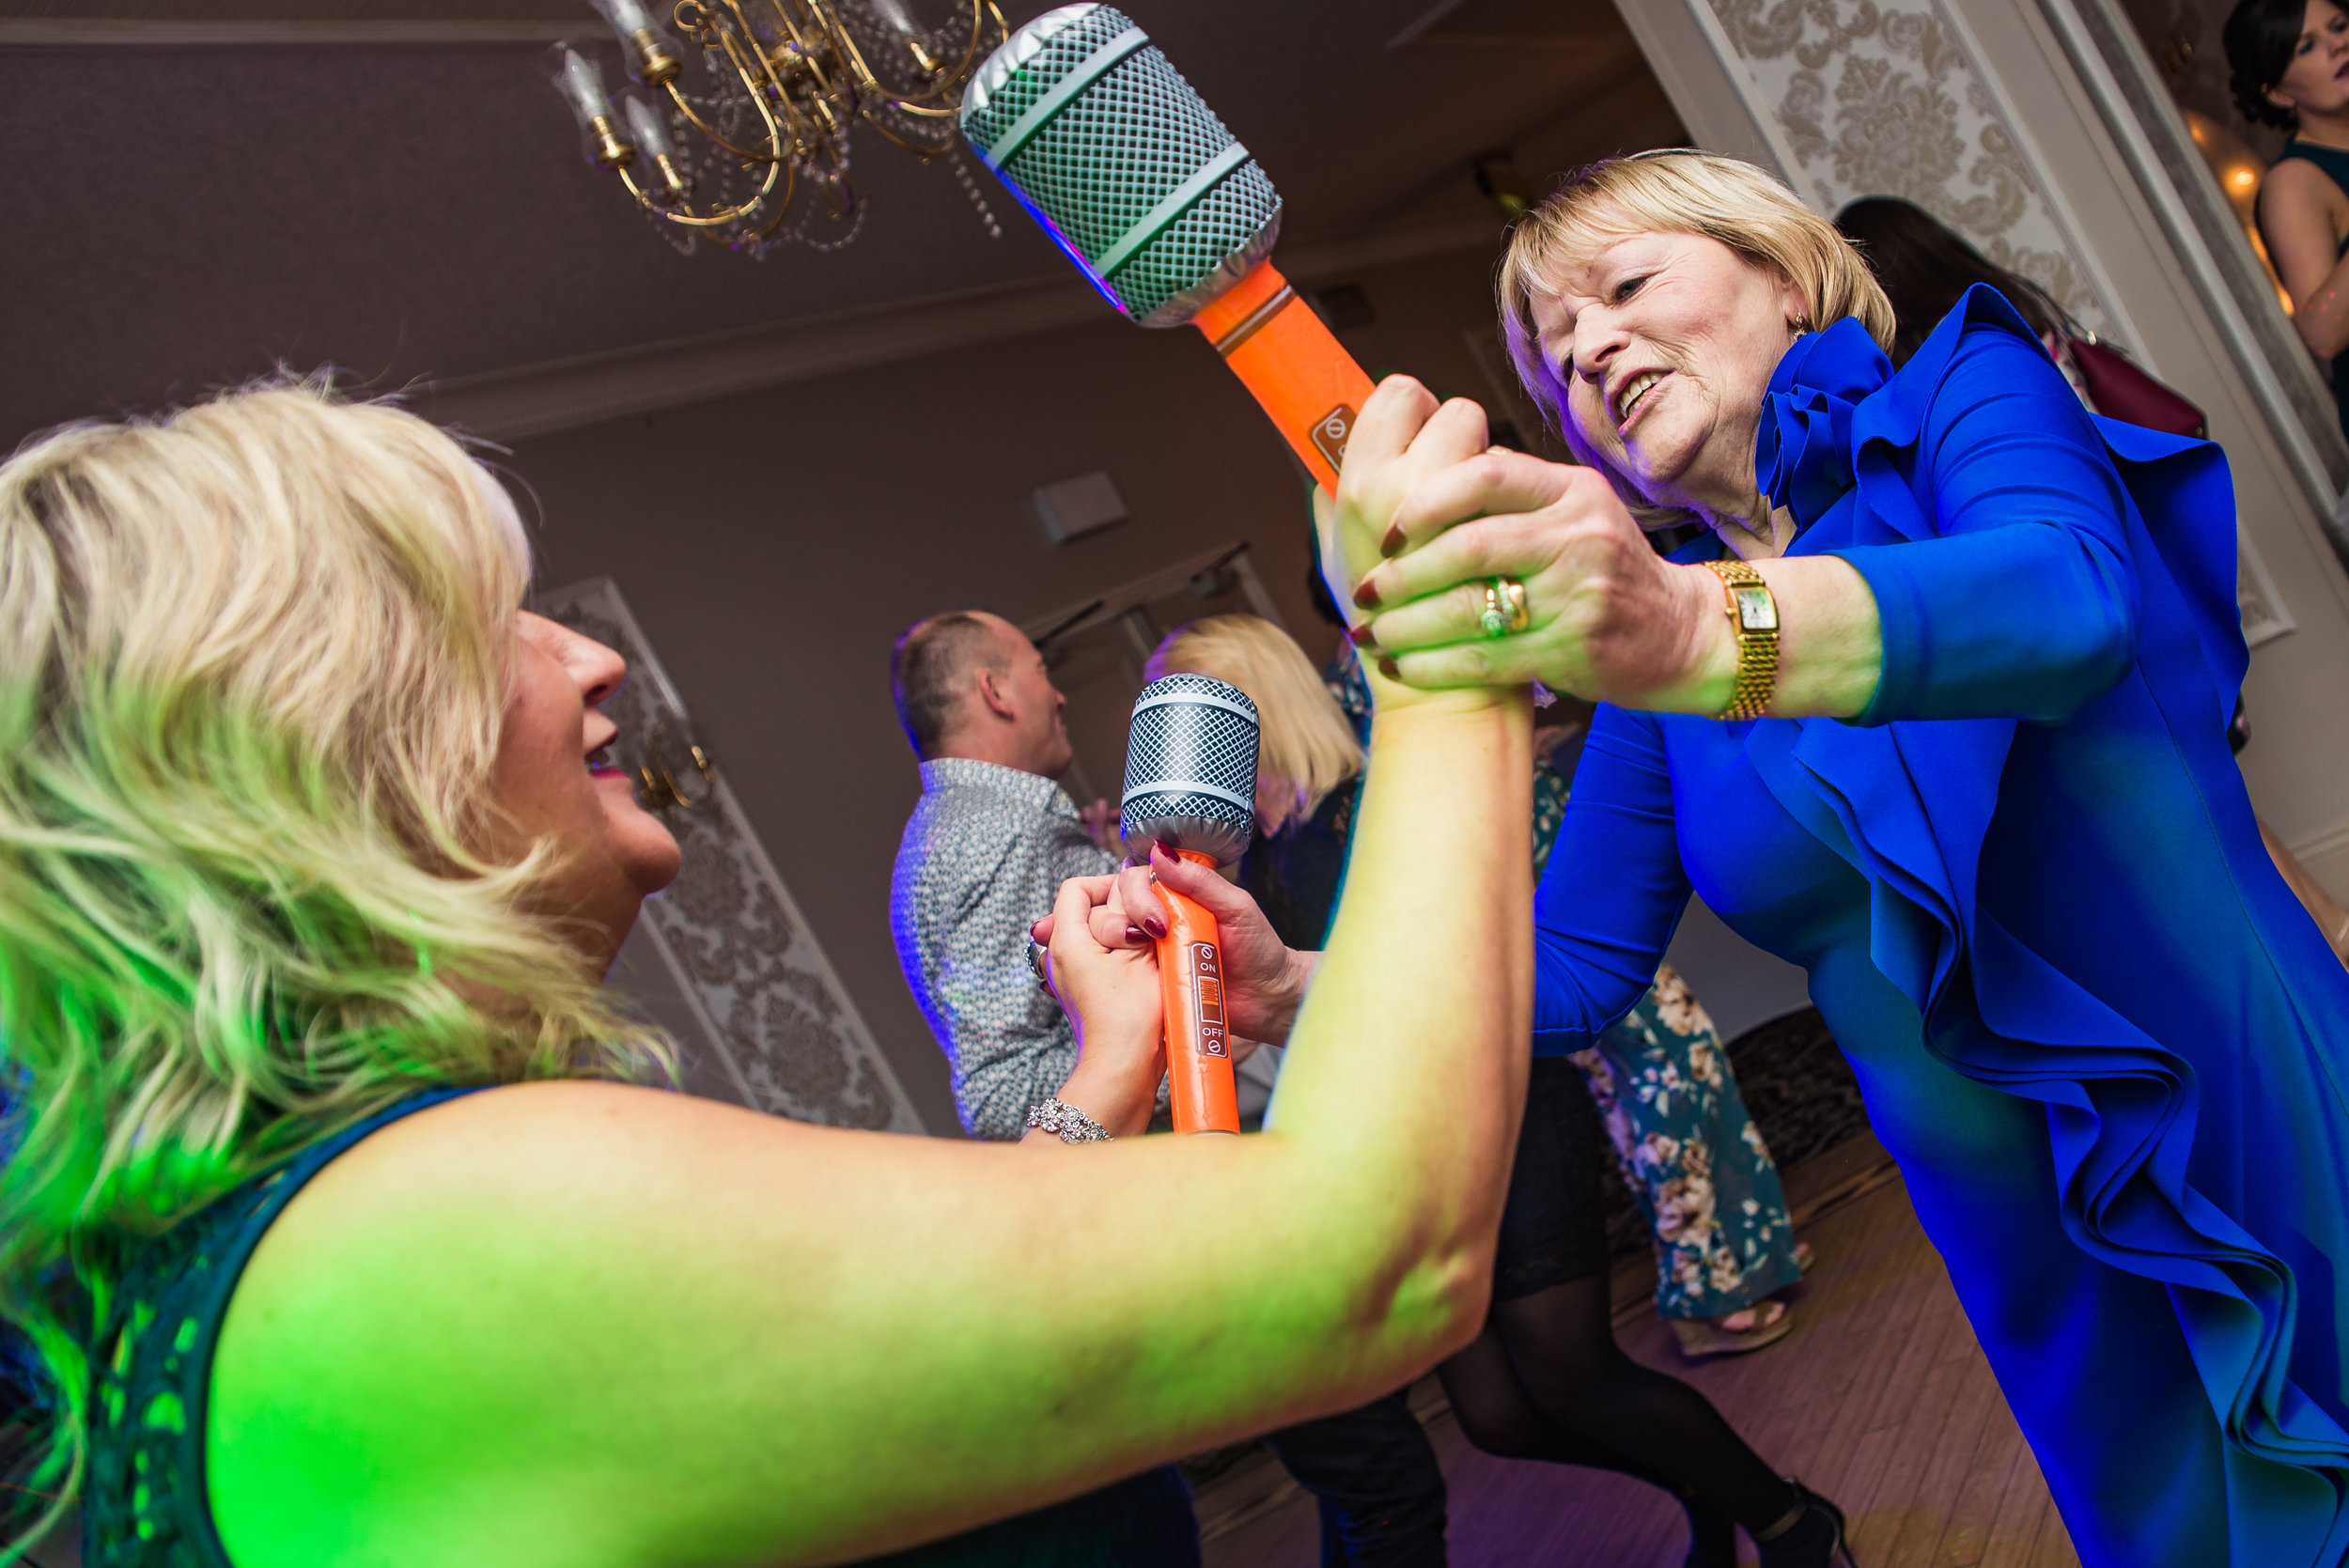 wedding photography microphone funny reception